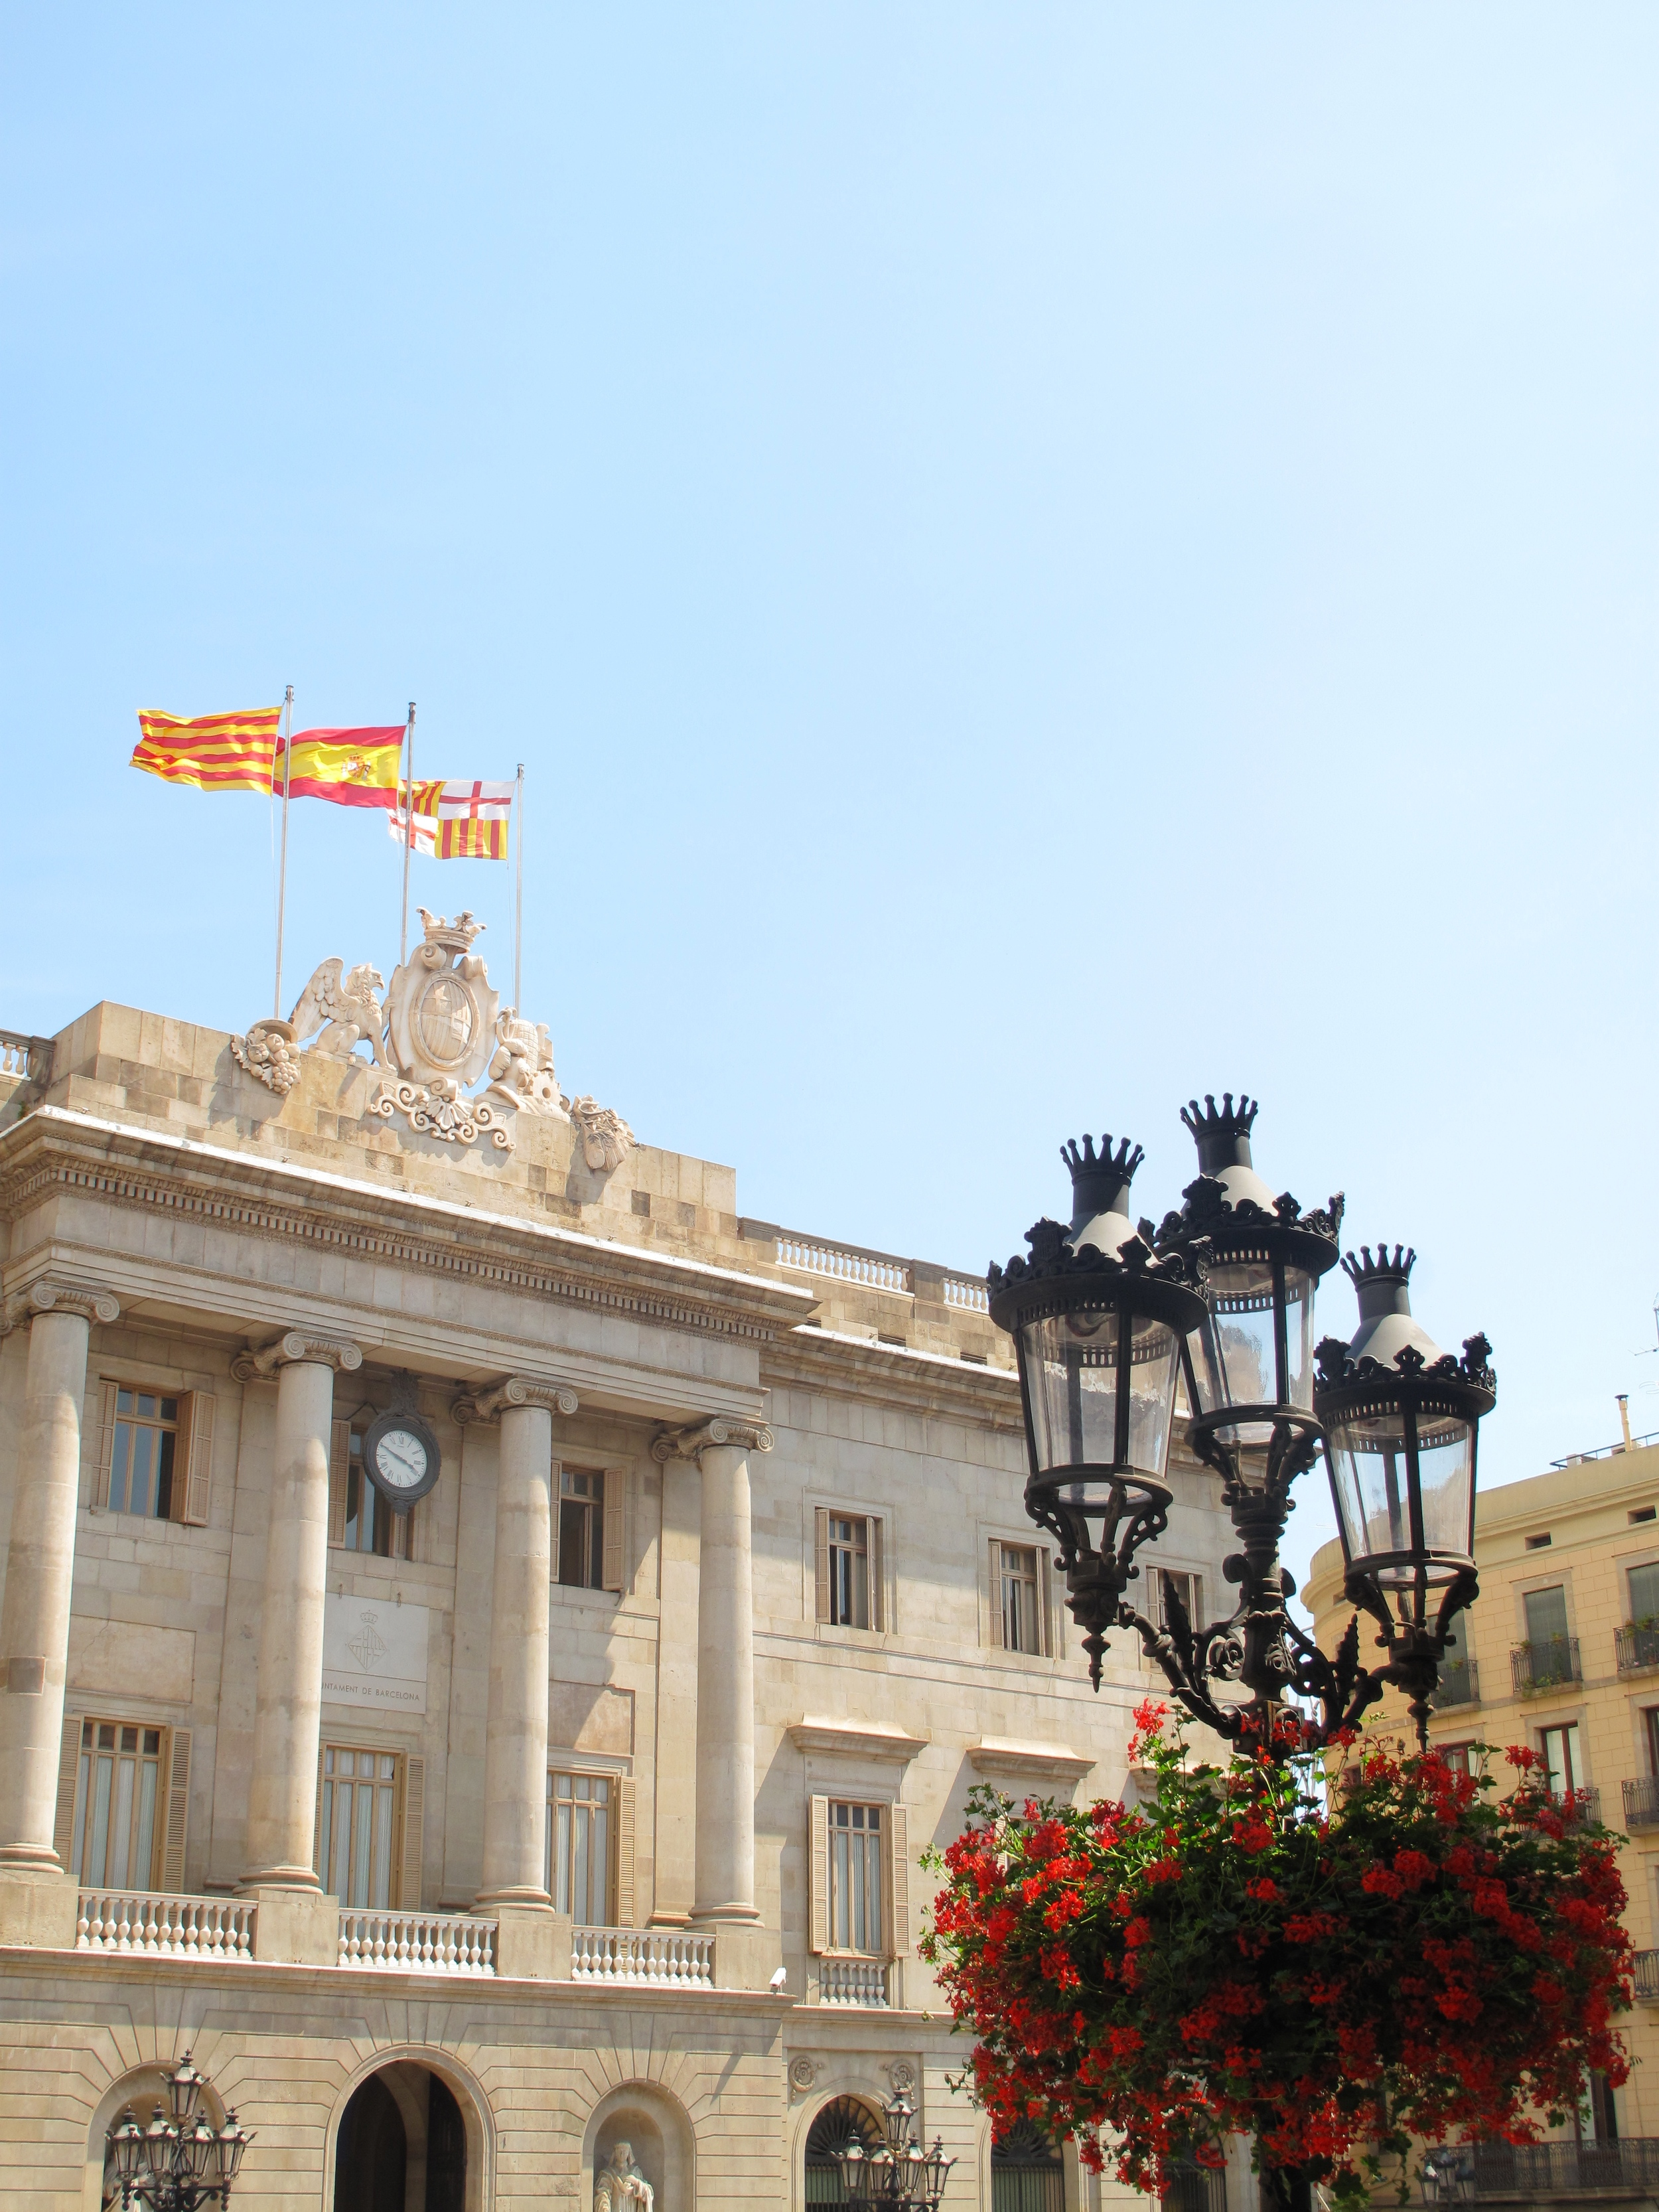 Buildings, flags and hanging flowers Barcelona